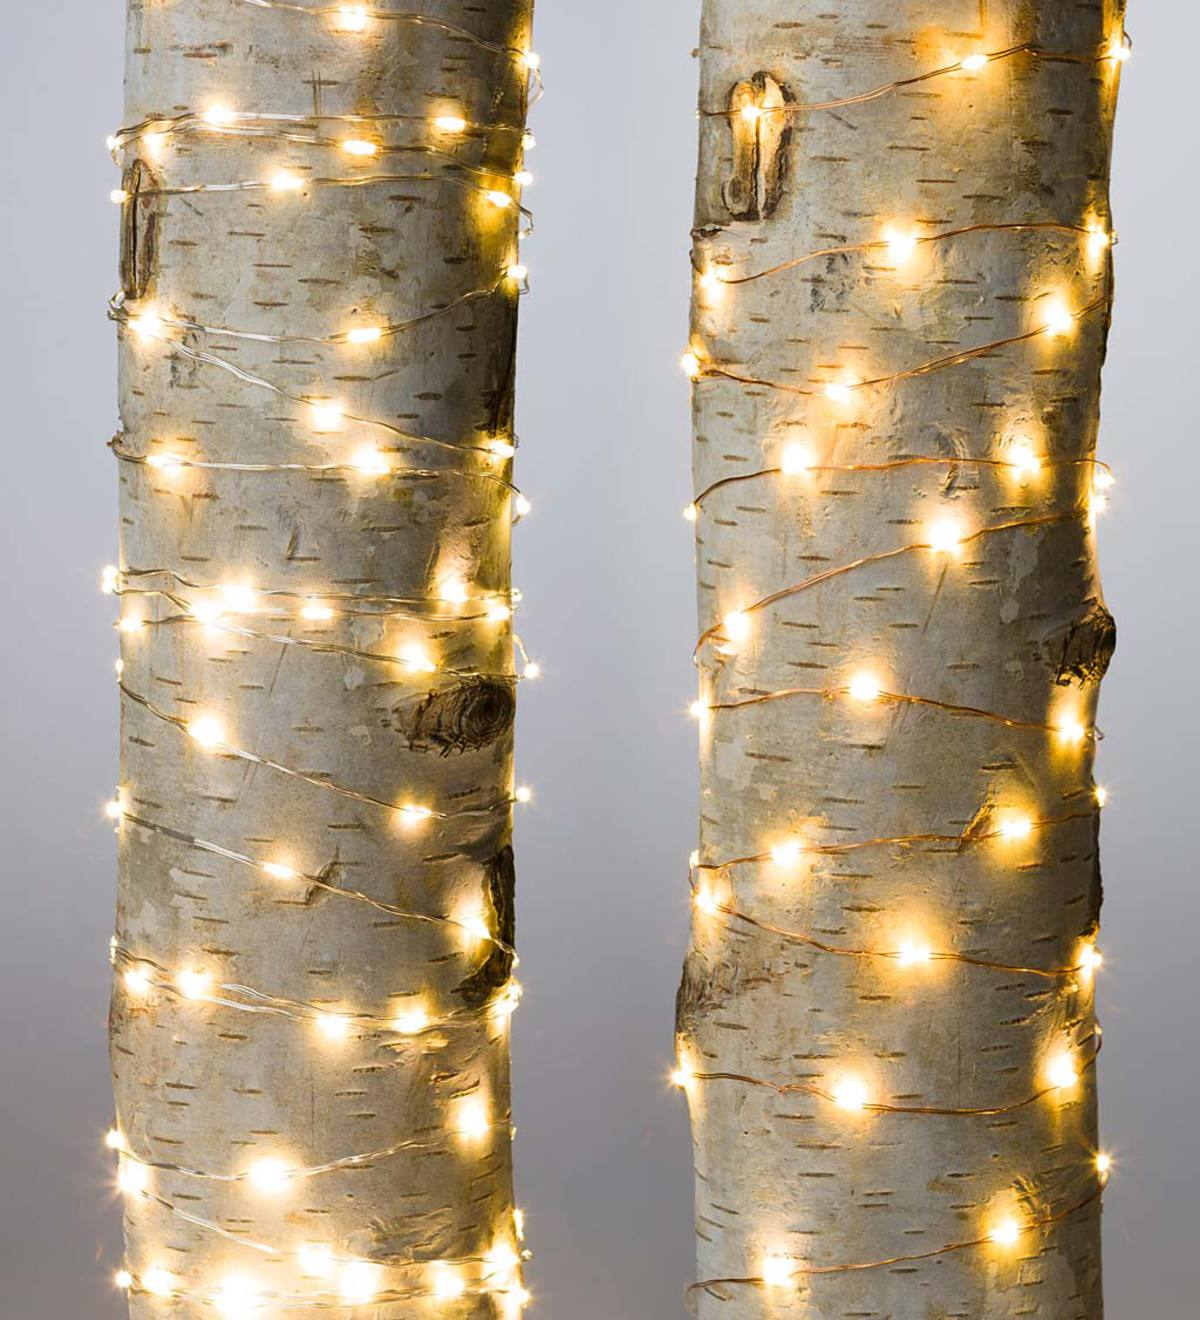 Firefly String Lights, 240 Warm White LEDs on Bendable Wire, Electric, 40'L